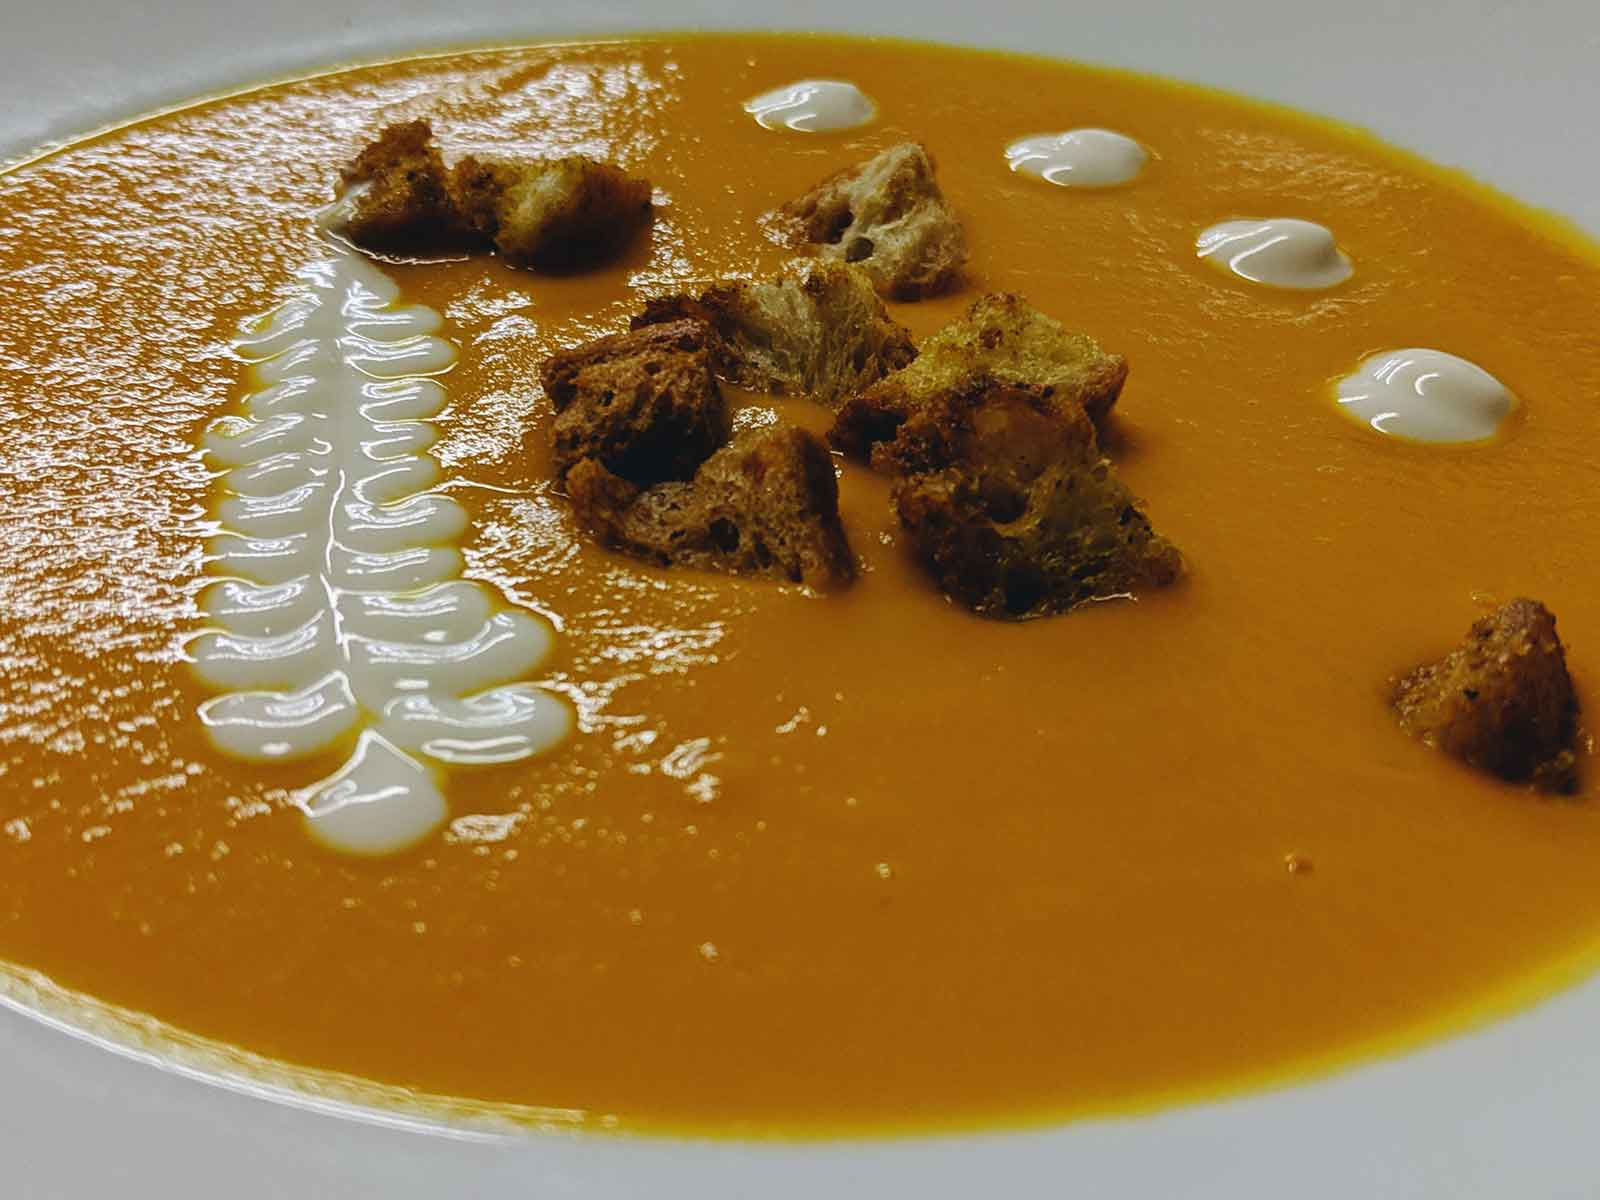 Cream of carrot and coconut soup and croutons with curry